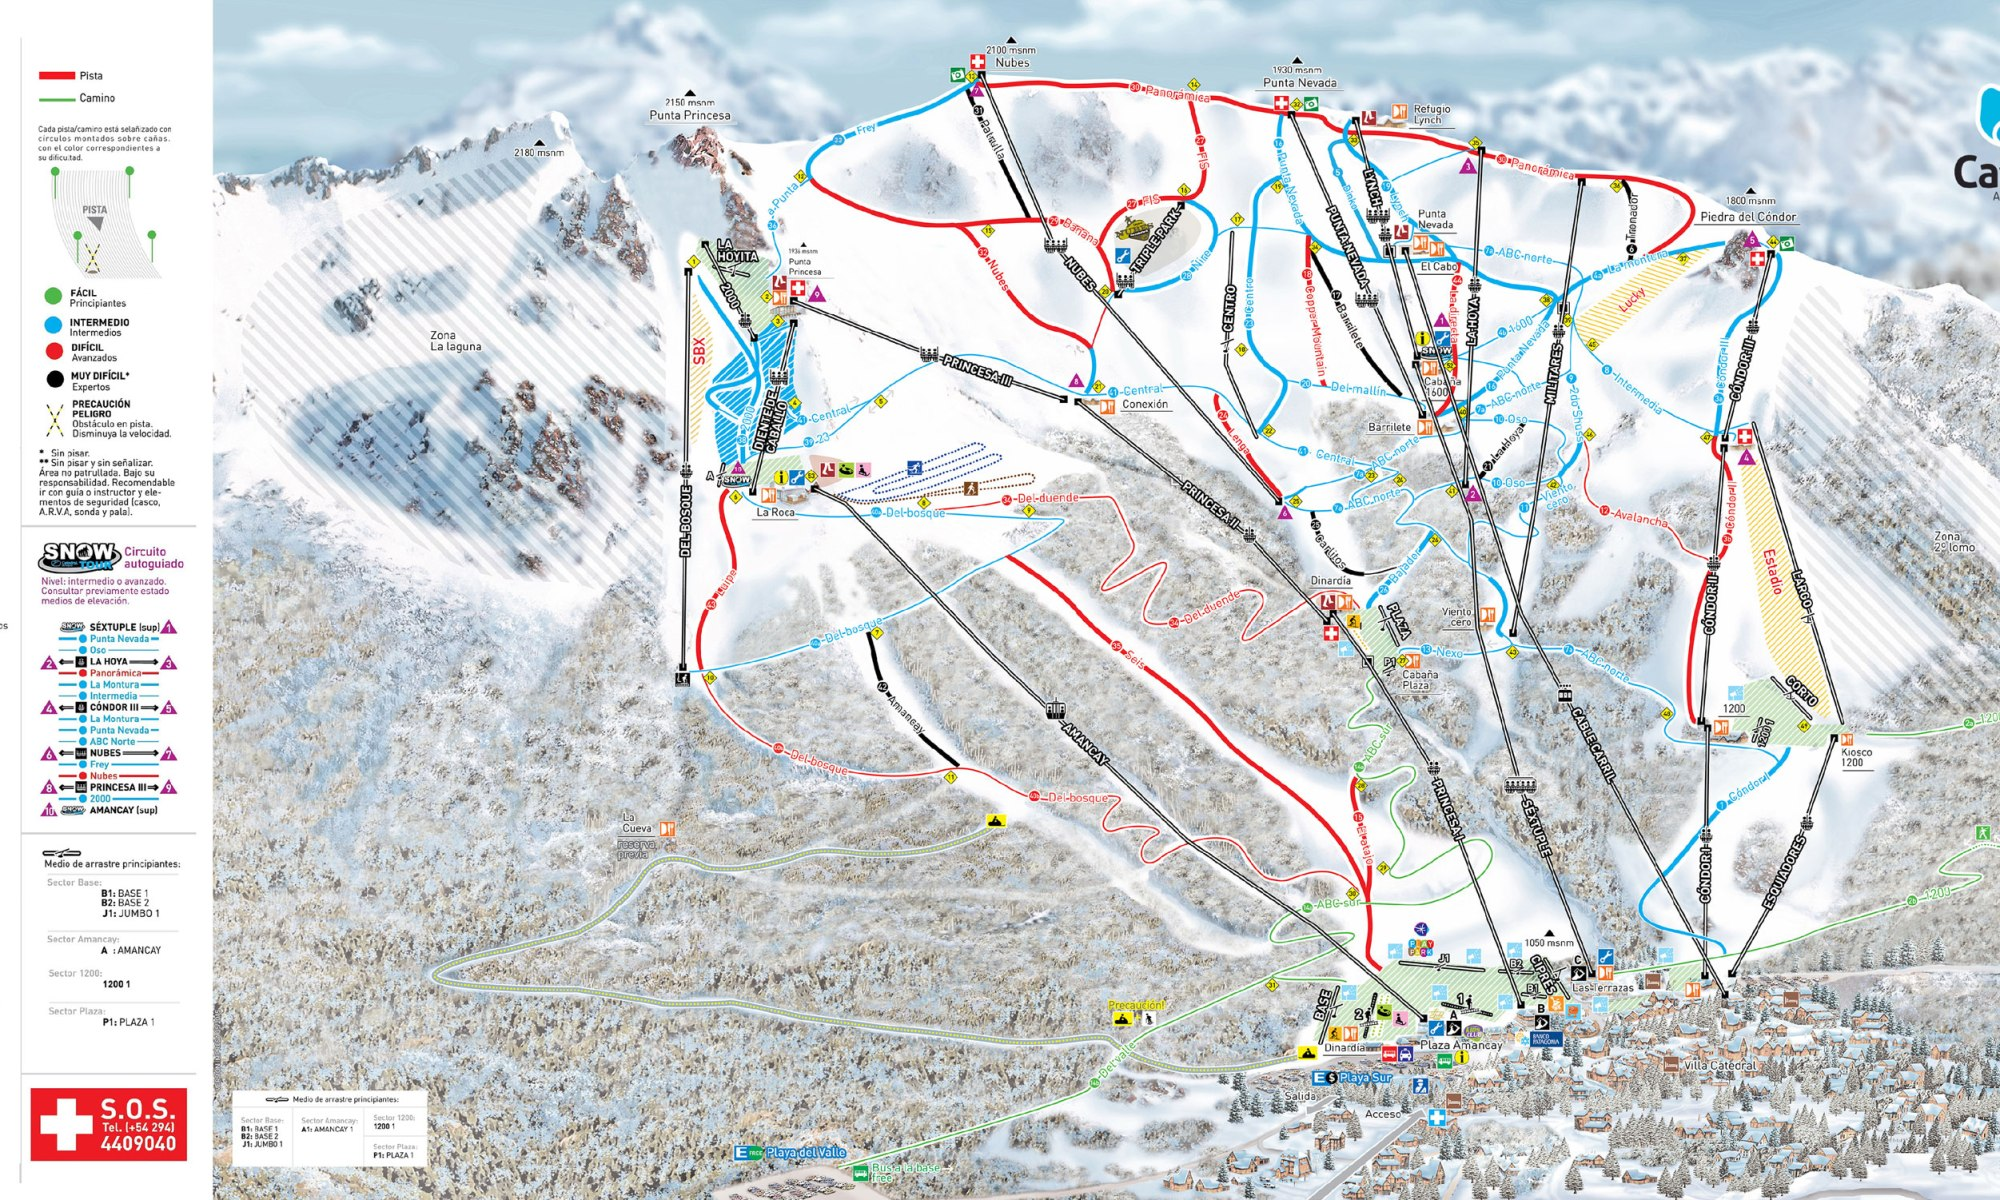 Catedral Alta Patagonia, Bariloche - Trail Map. This past Saturday Cerro Catedral started its ski season.